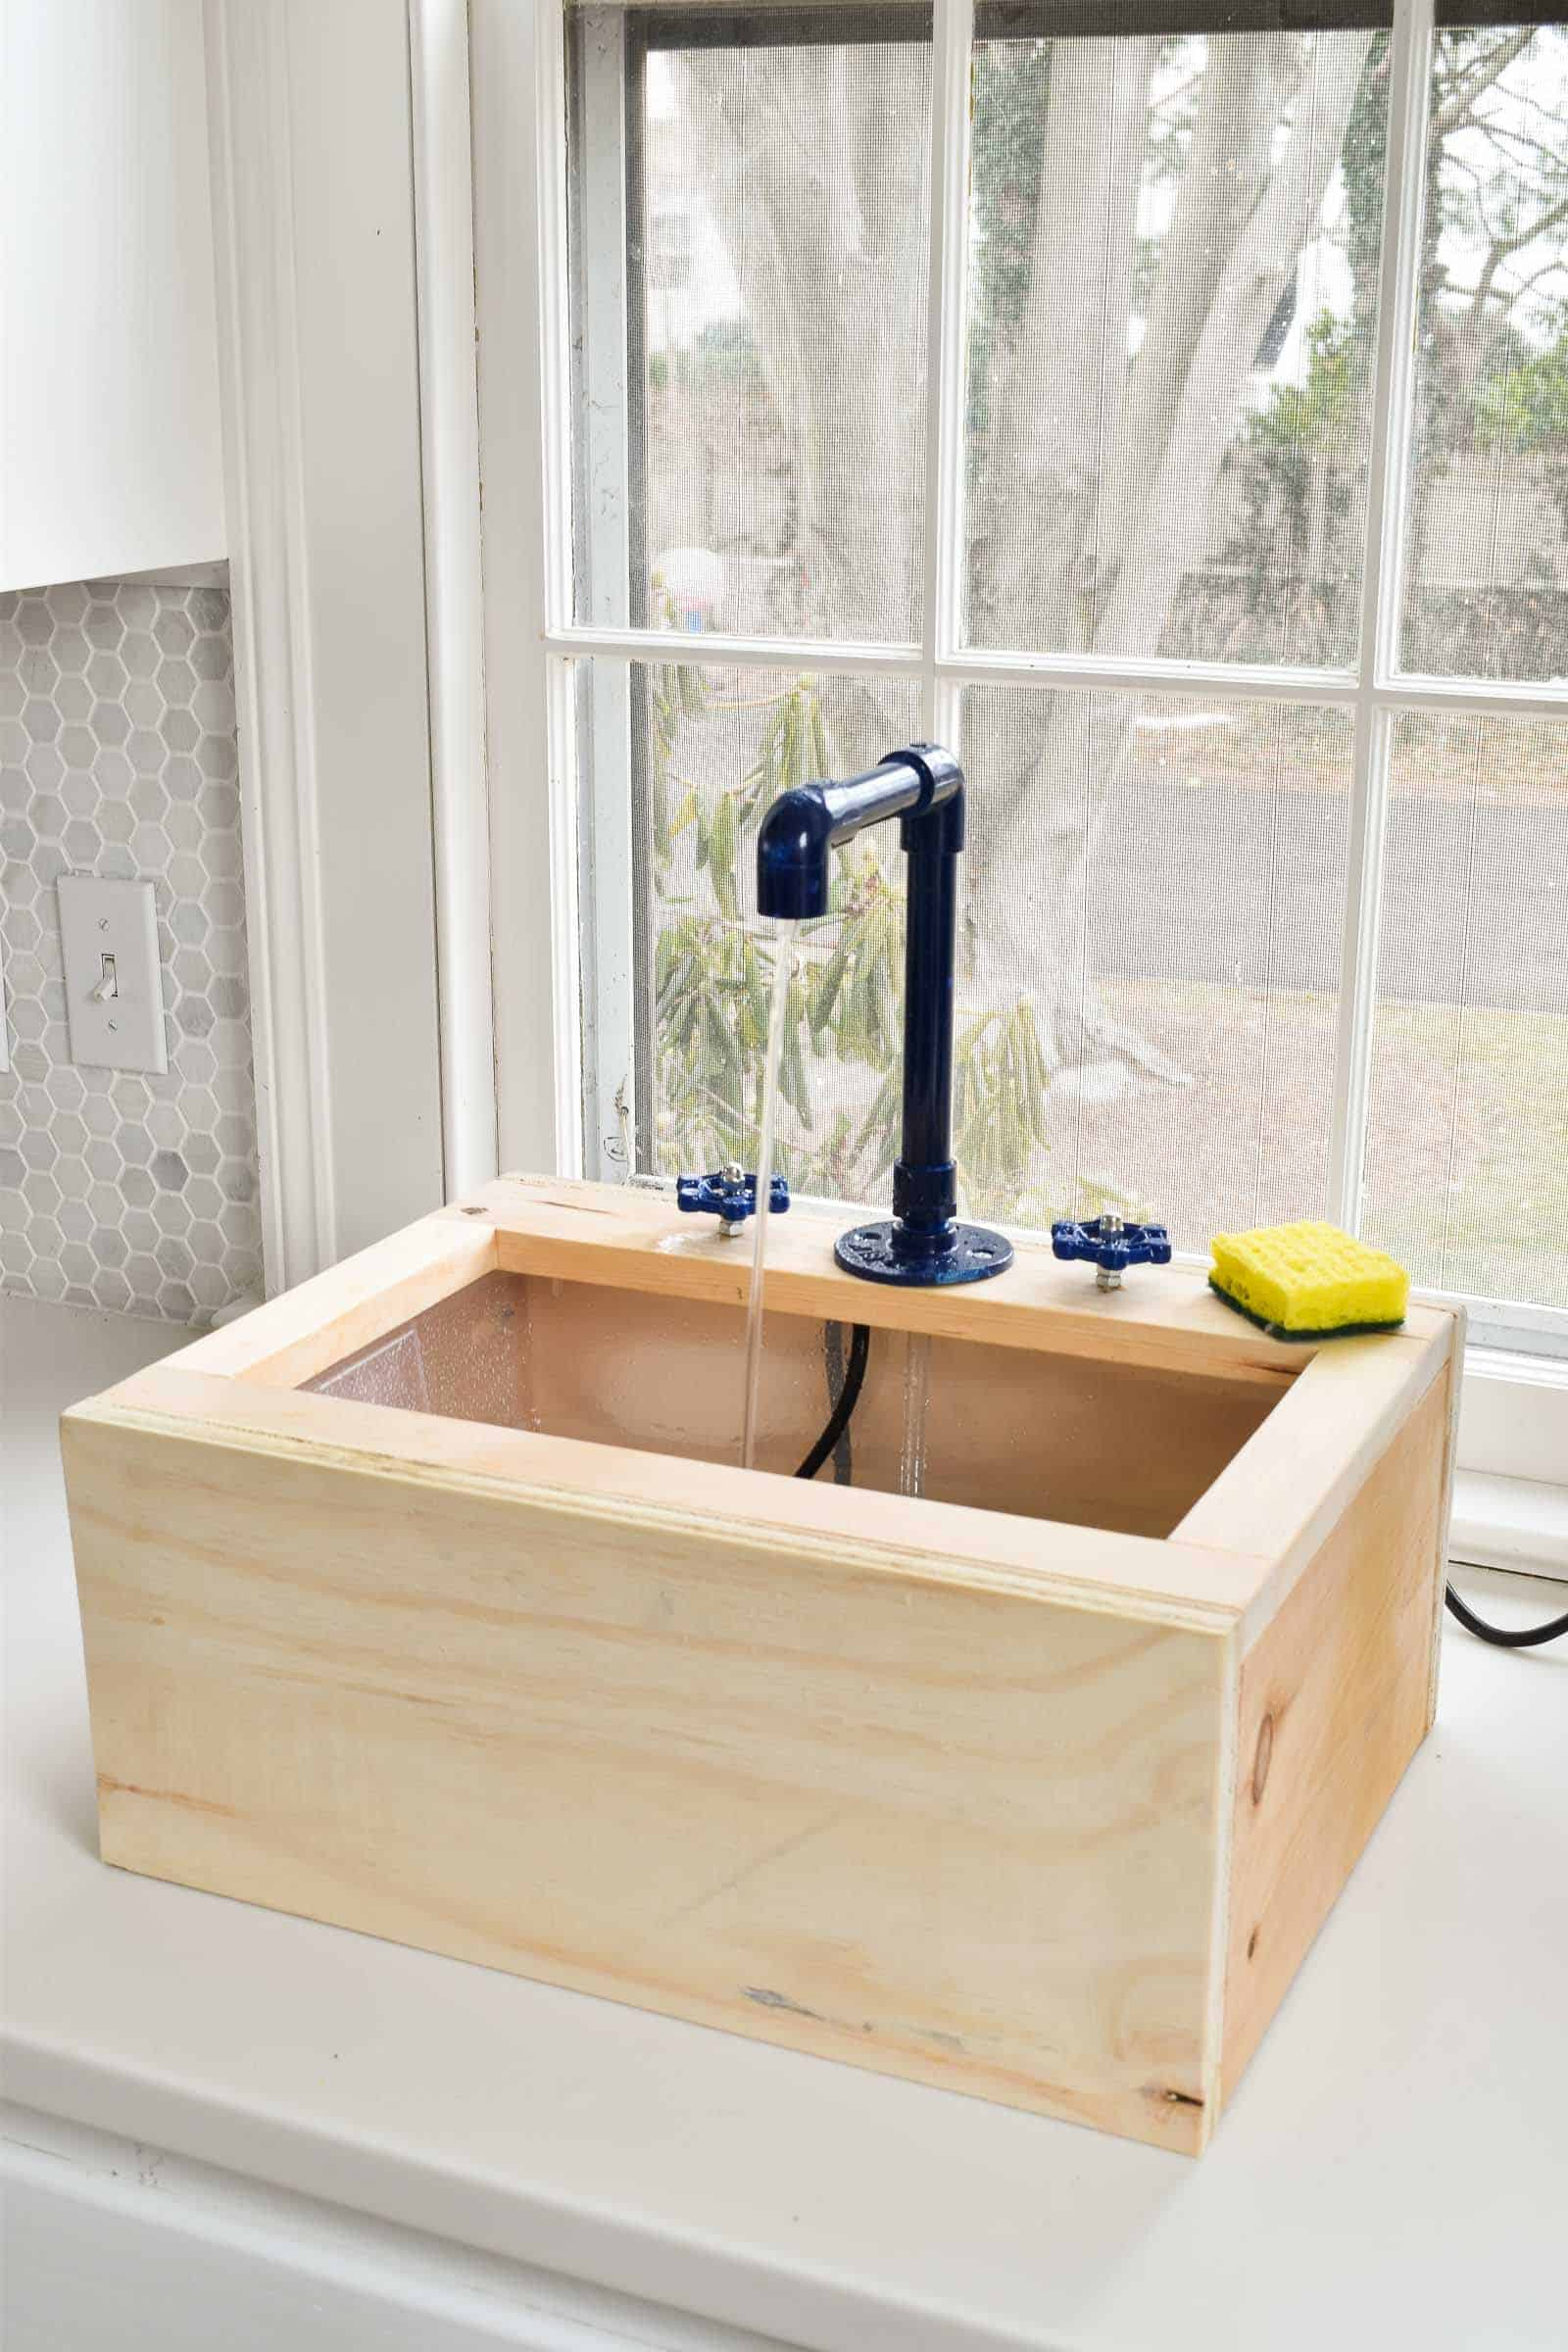 working toy sink